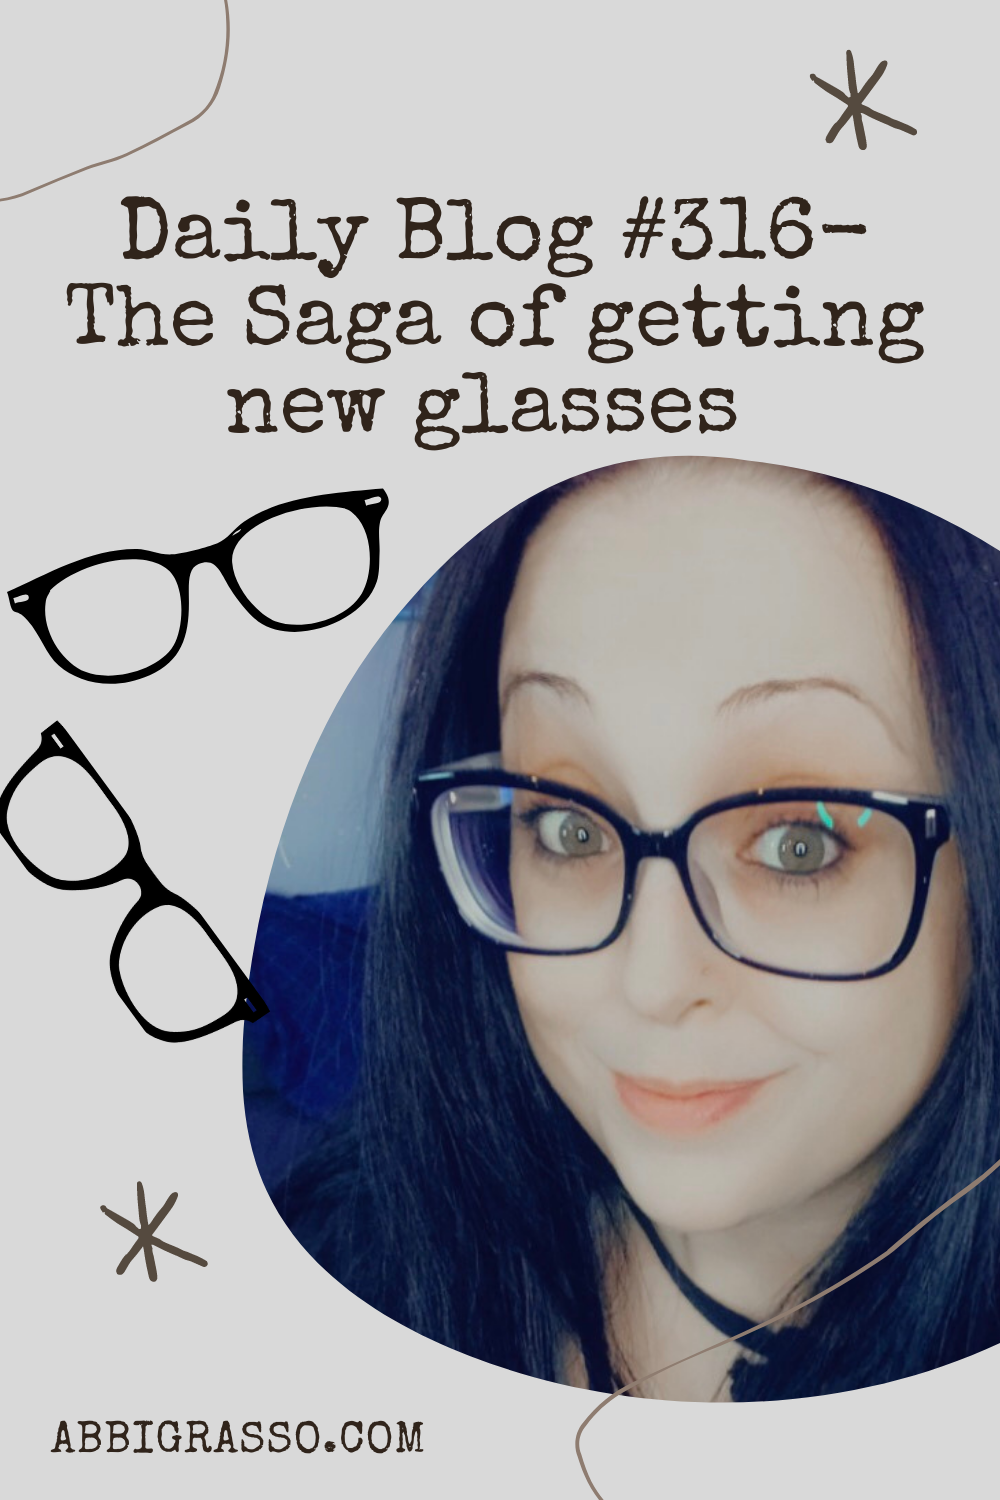 Daily Blog #316- The Saga of getting new glasses